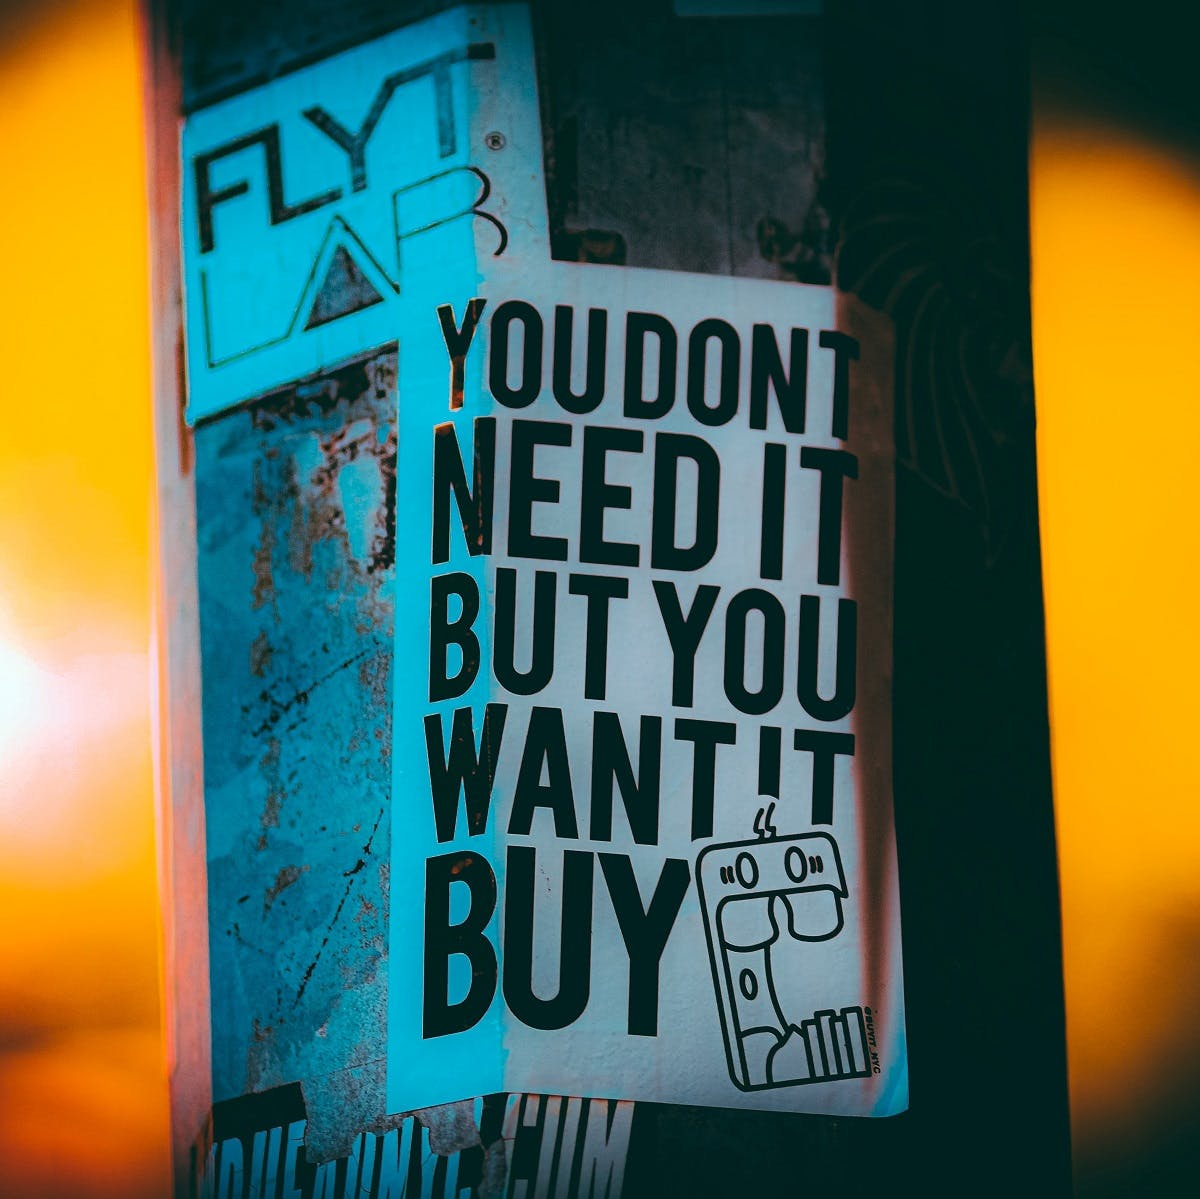 A pro consumerism sign. A circular economy draws away from consumerism culture